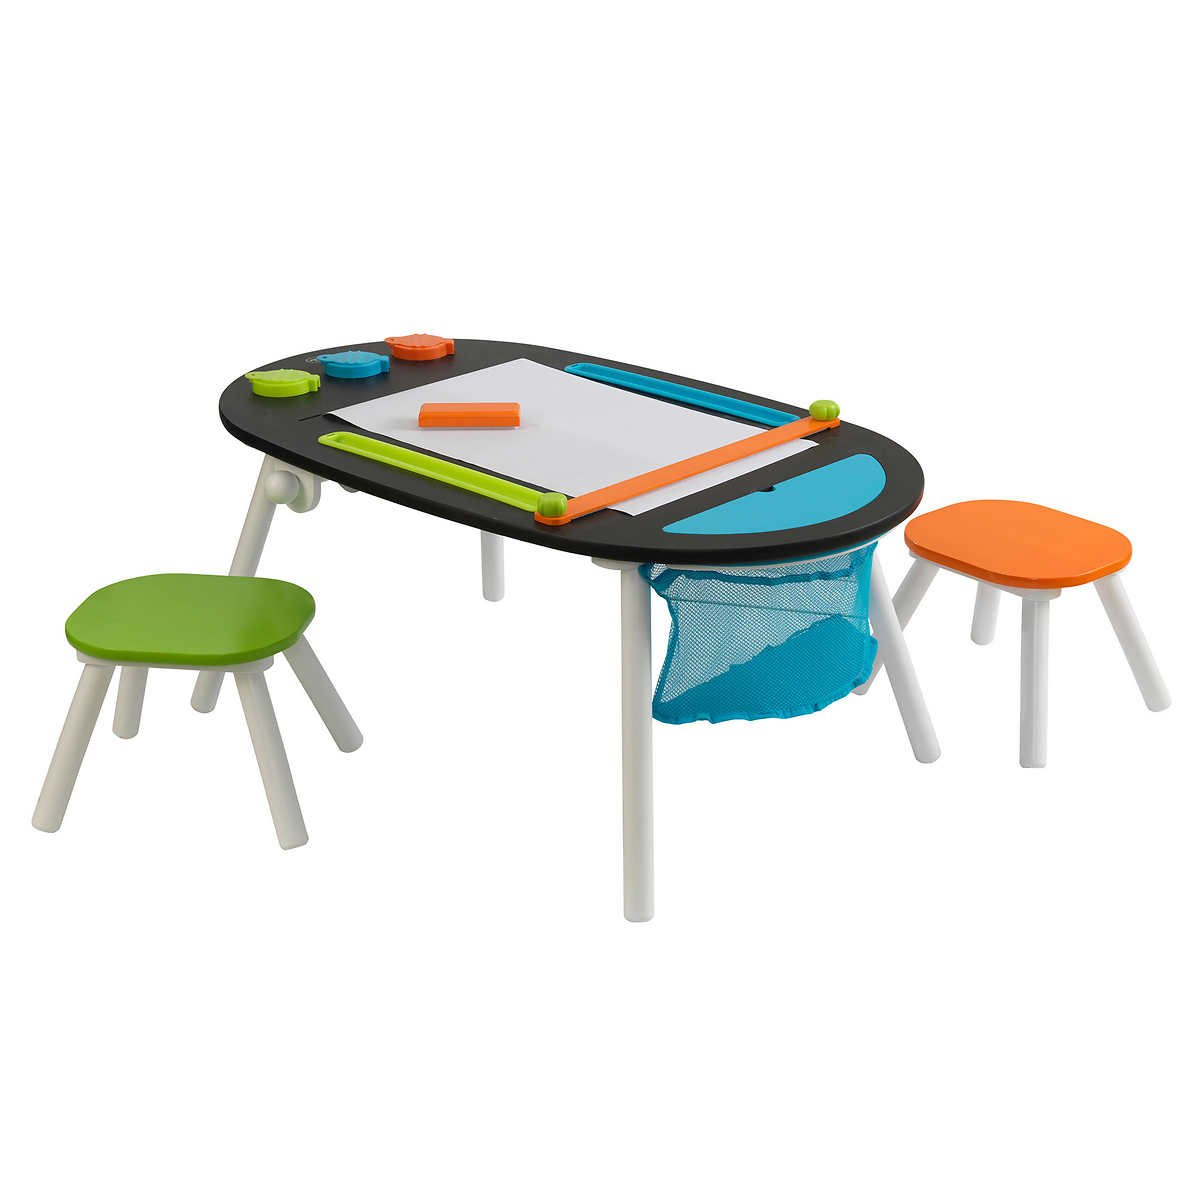 Durable Deluxe Chalkboard Art Table W/ 3 Sealable Spill-Proof Paint Cups, 2 Paper Rolls, 2 Colorful Surdy Stools Features Mesh Storage Compartment Great For Playroom For Ages 3 and Up